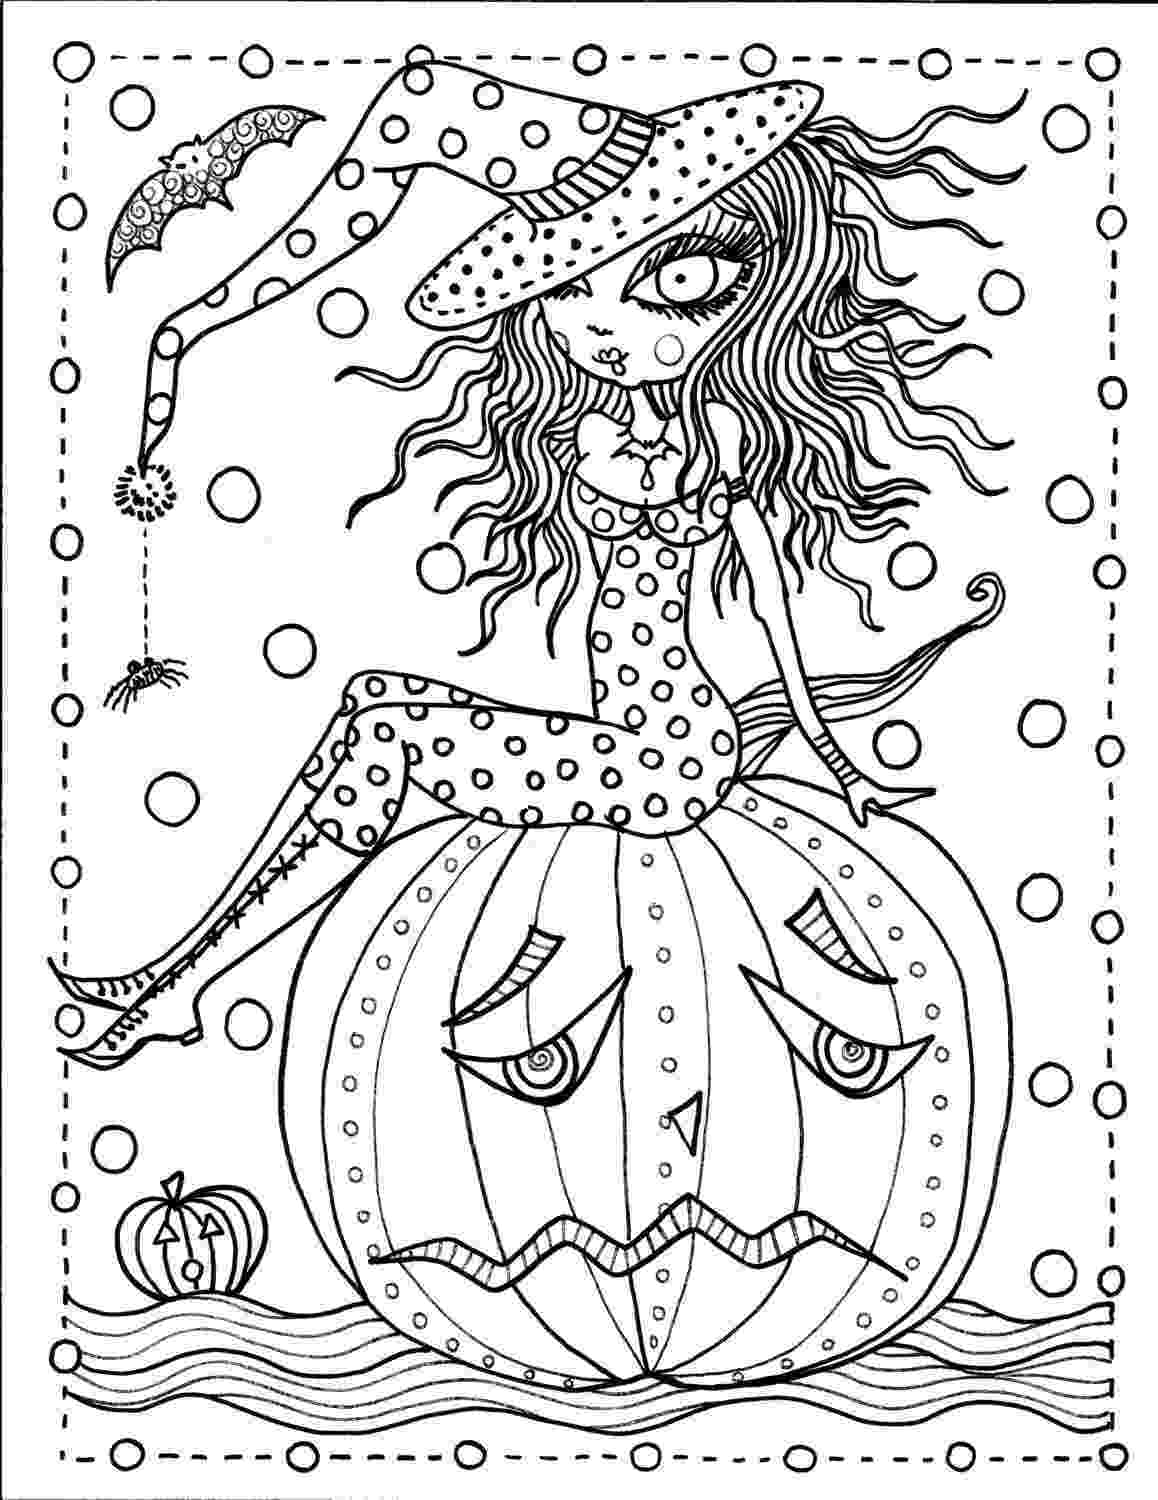 coloring pages for adults halloween best halloween coloring books for adults cleverpedia halloween for pages adults coloring